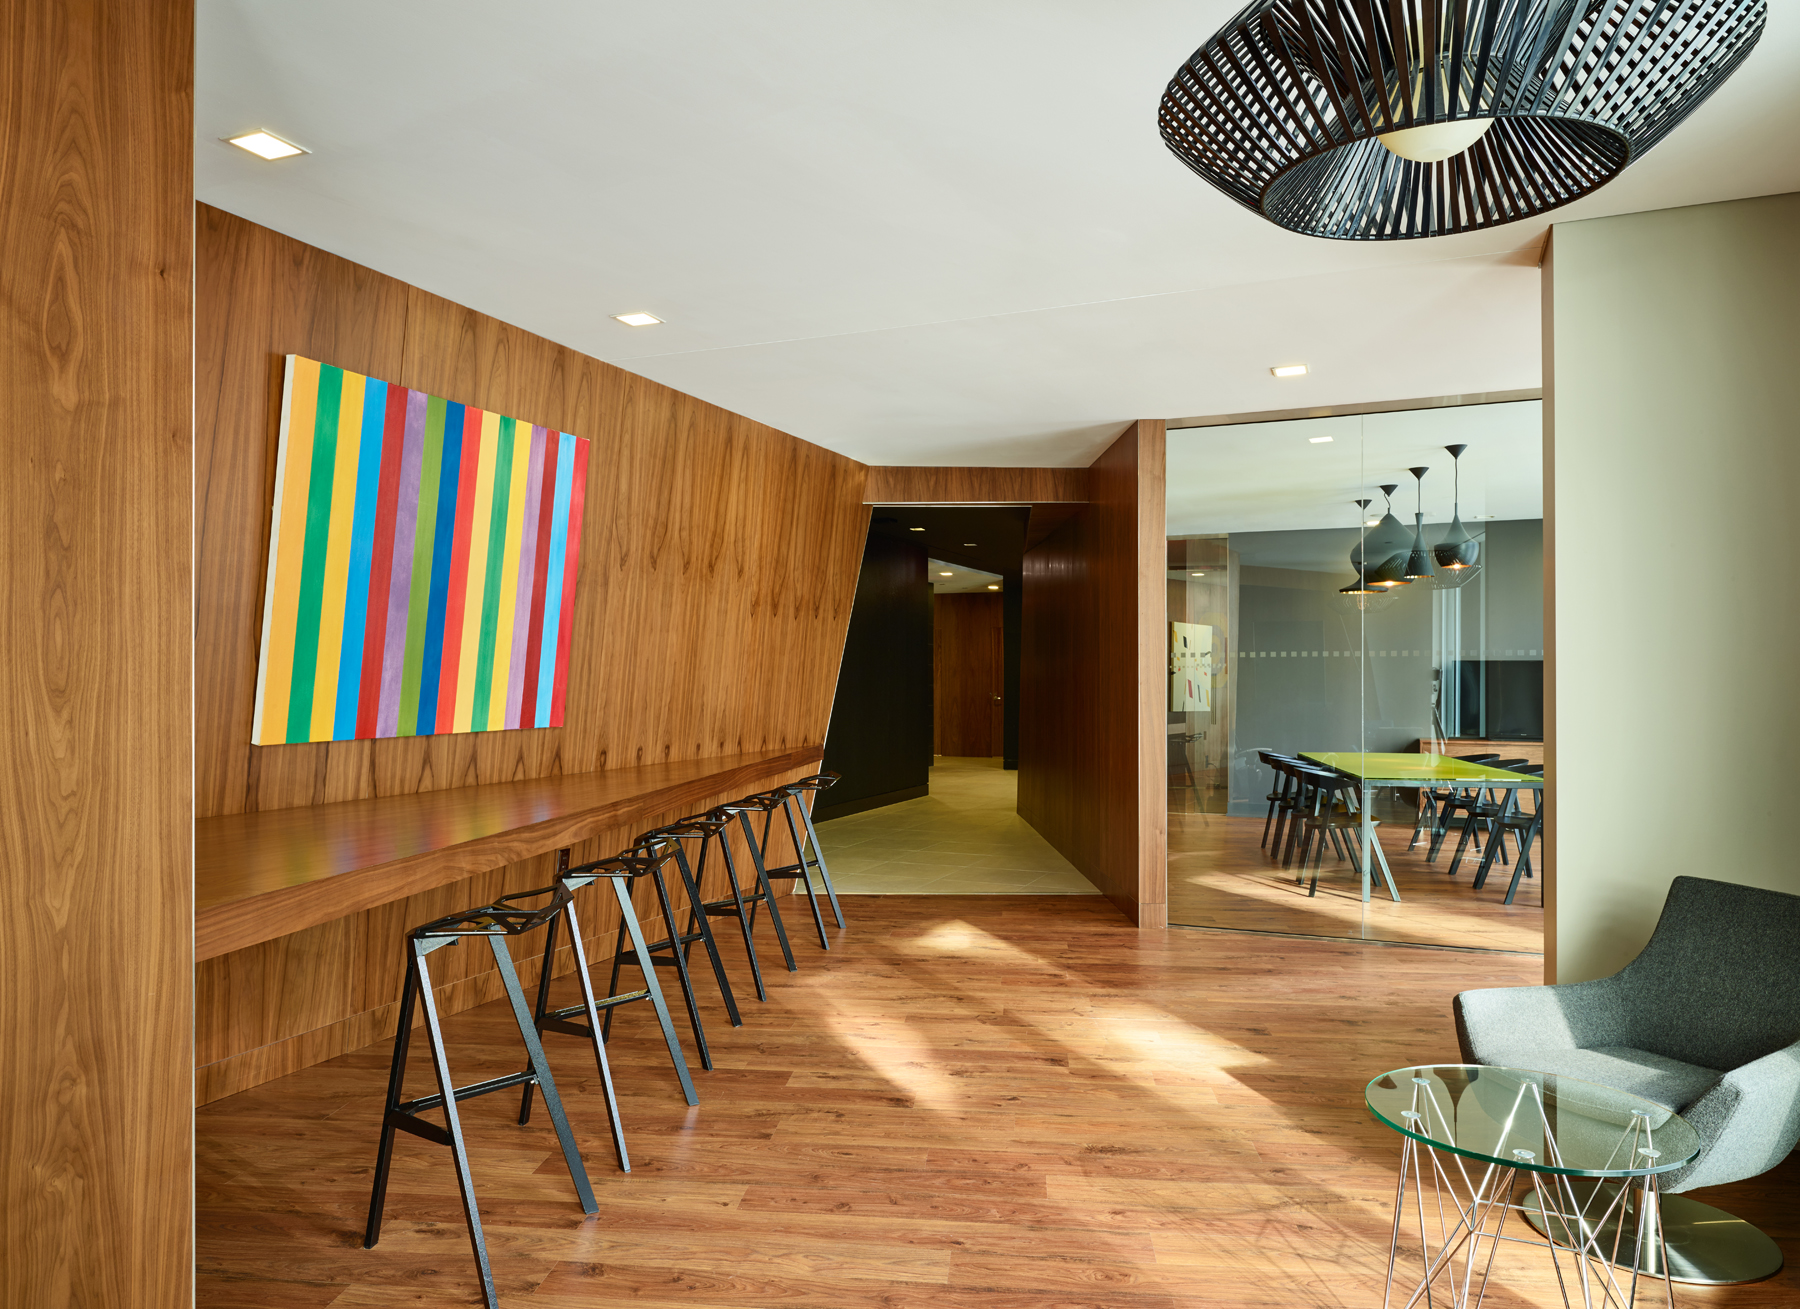 Concord Quartz communal space seating area with wood walls, wood floors, black stools, and colourful abstract artwork